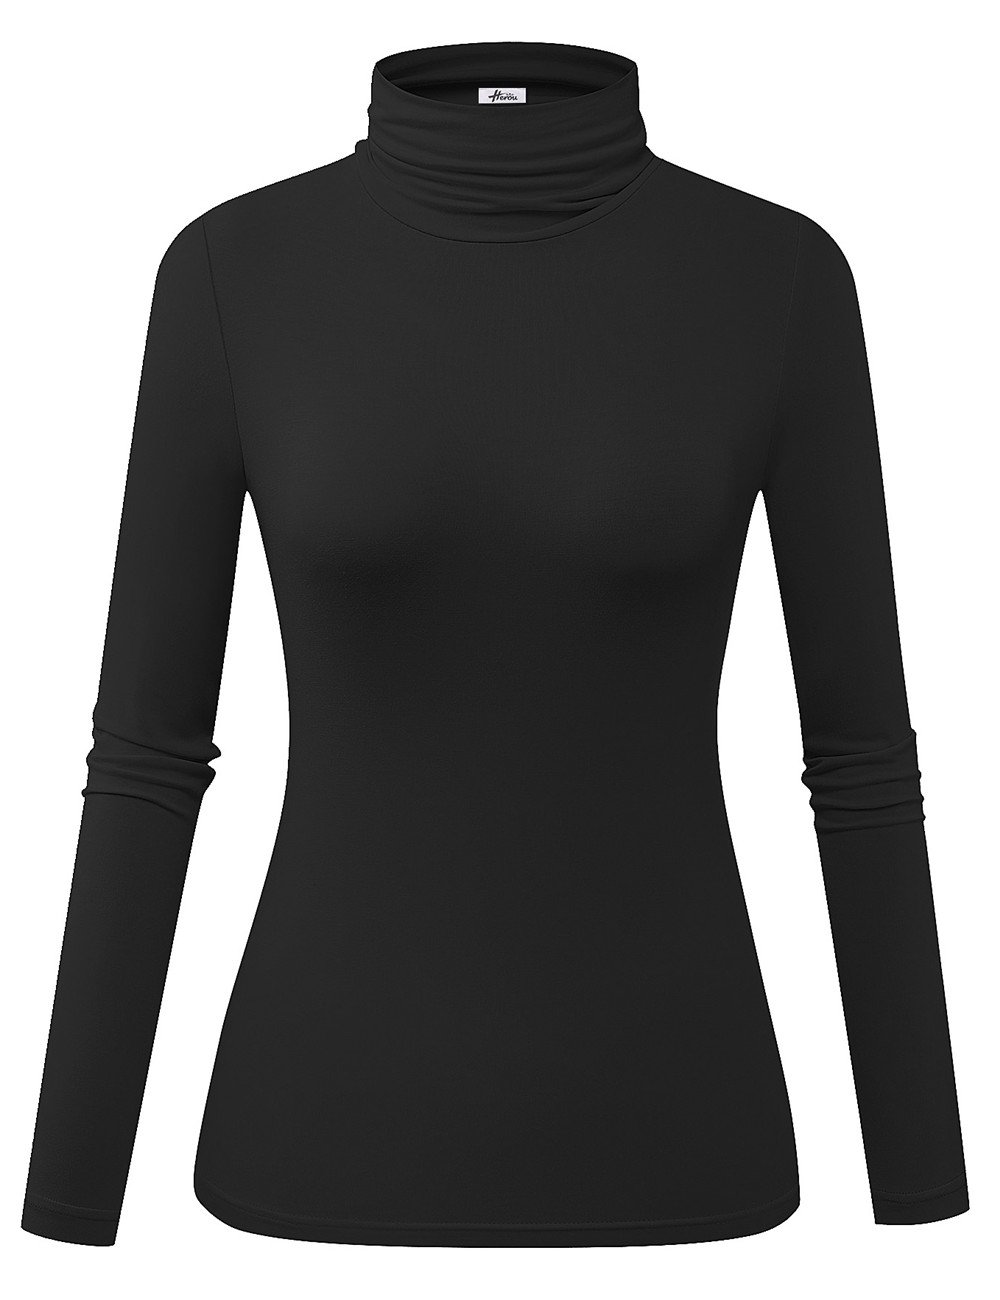 Herou Model Stretchy Fitted Long Sleeve Mock Black Turtleneck Tops for Women Small by Herou